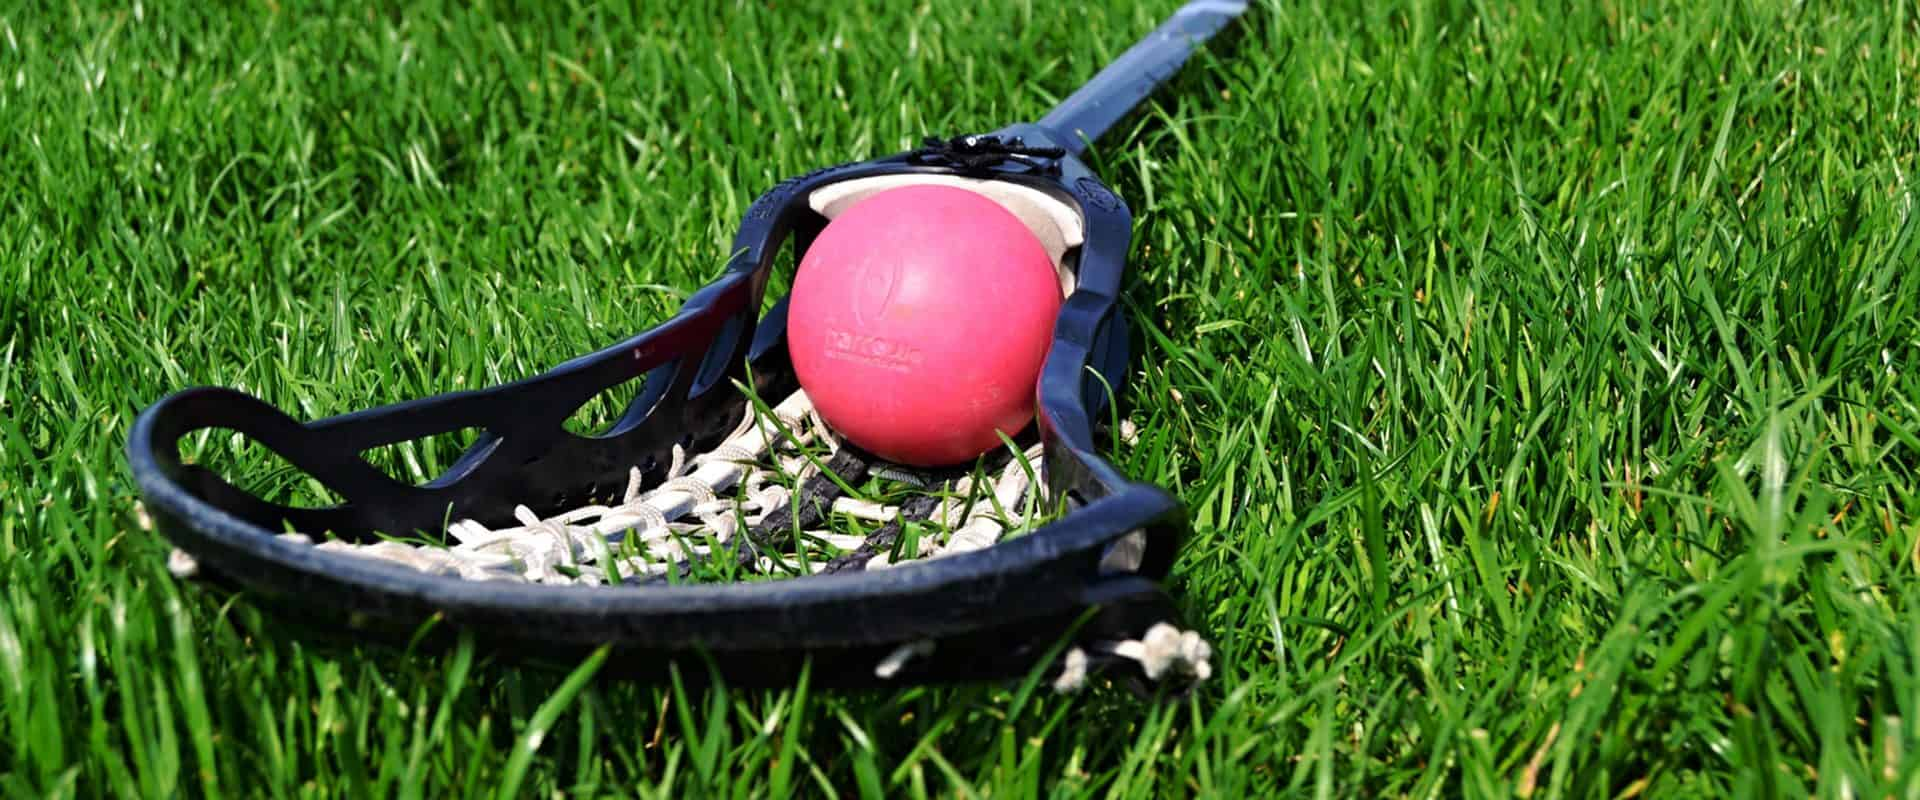 Lacrosse stick and ball.